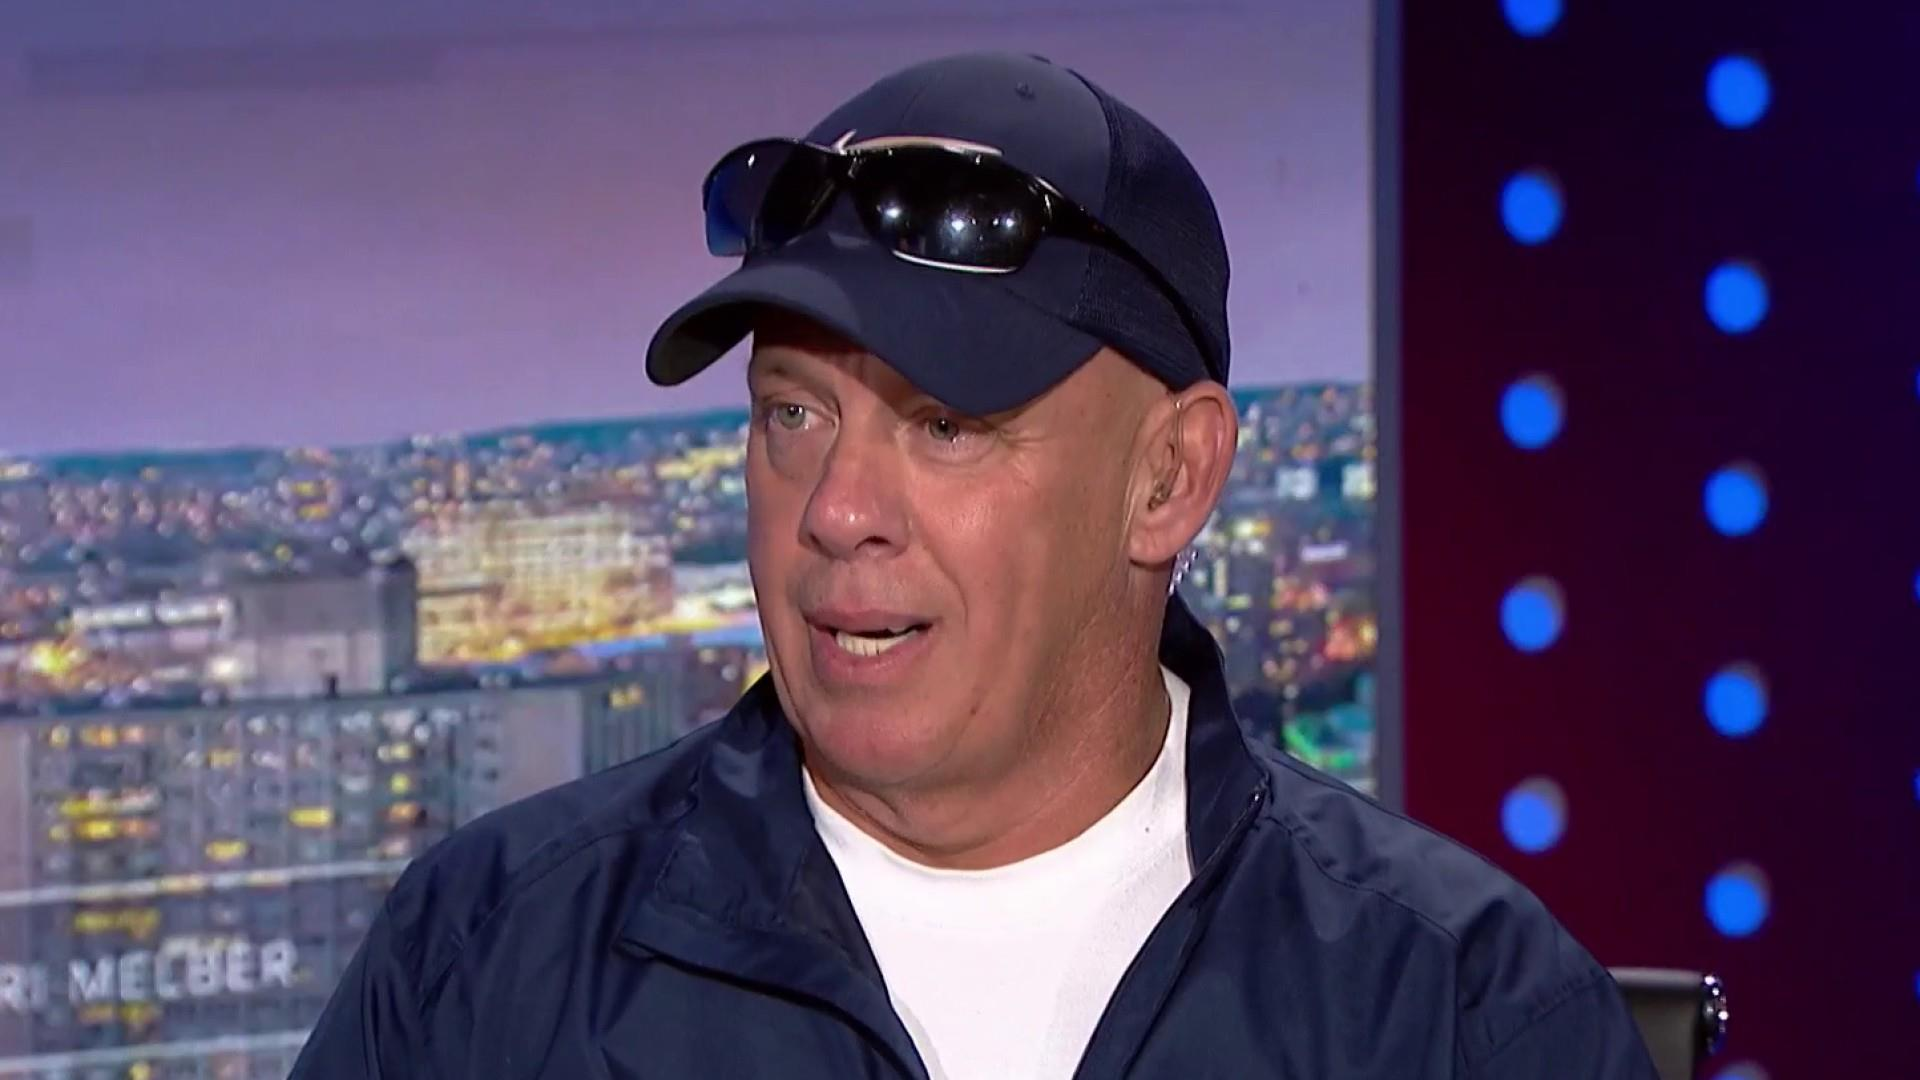 9/11 first responder chokes up recounting Jon Stewart's 'compassion'